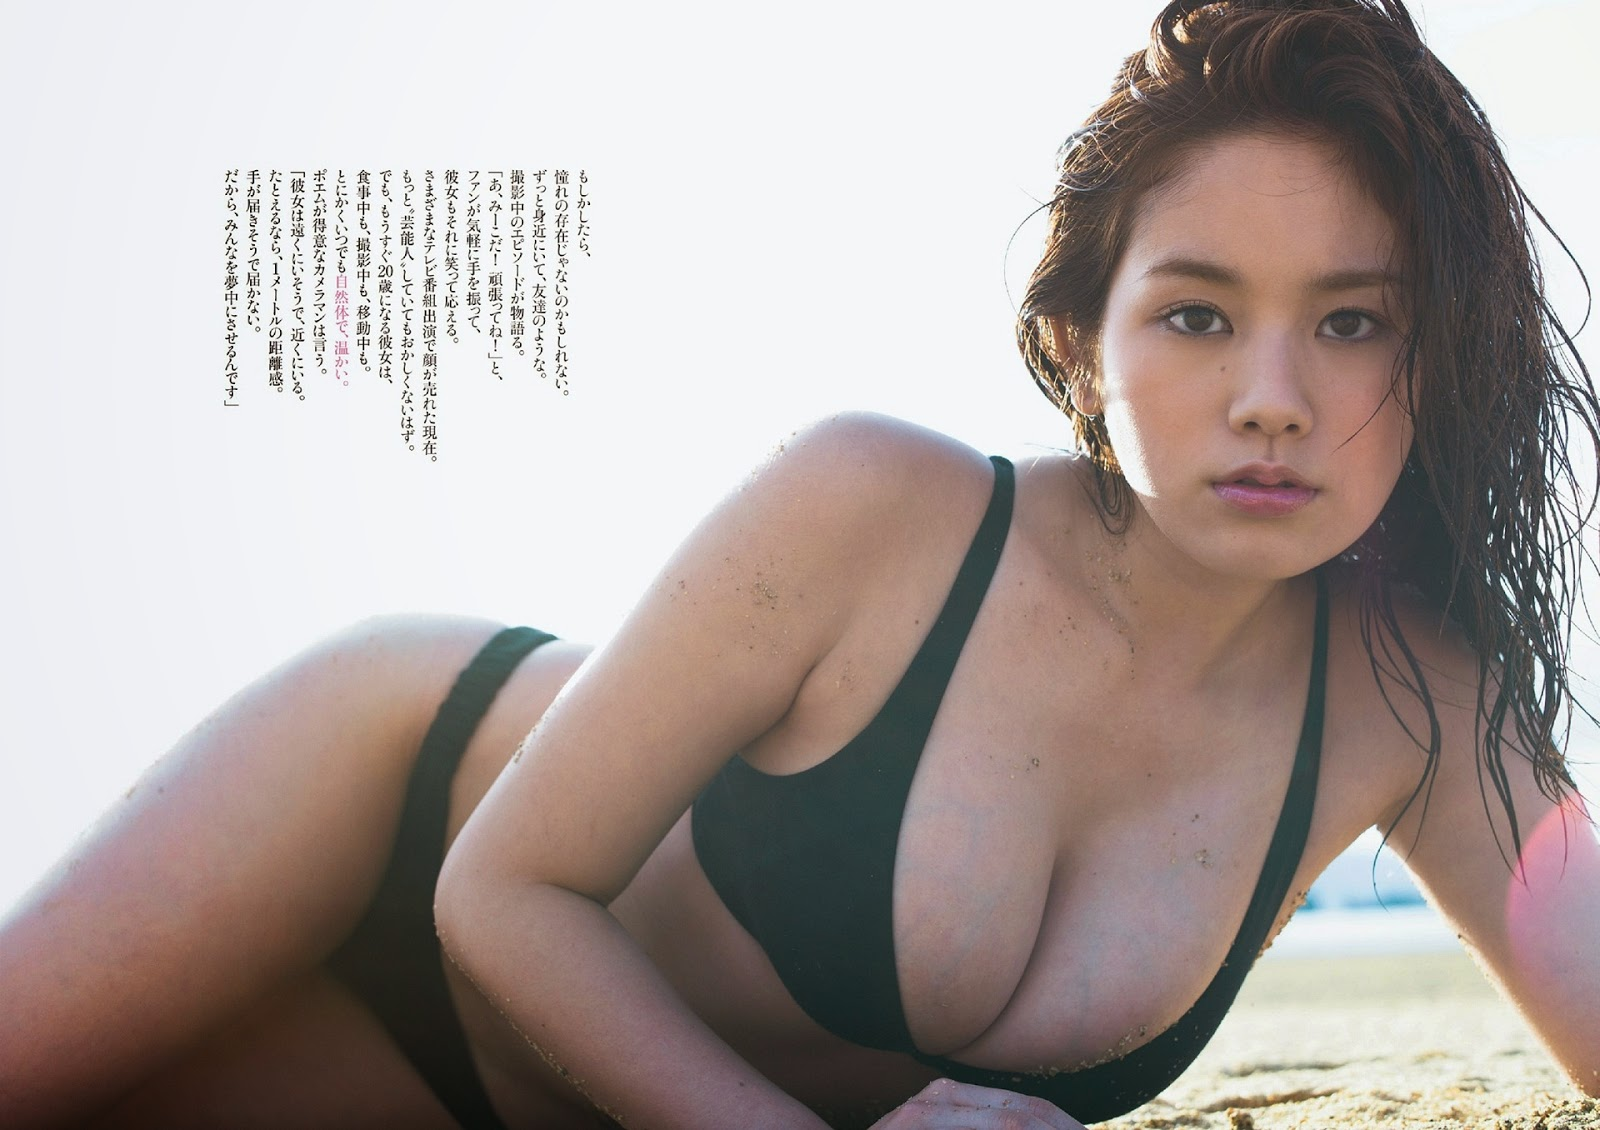 Kakei Miwako 筧美和子 Weekly Playboy March 2014 Wallpaper HD